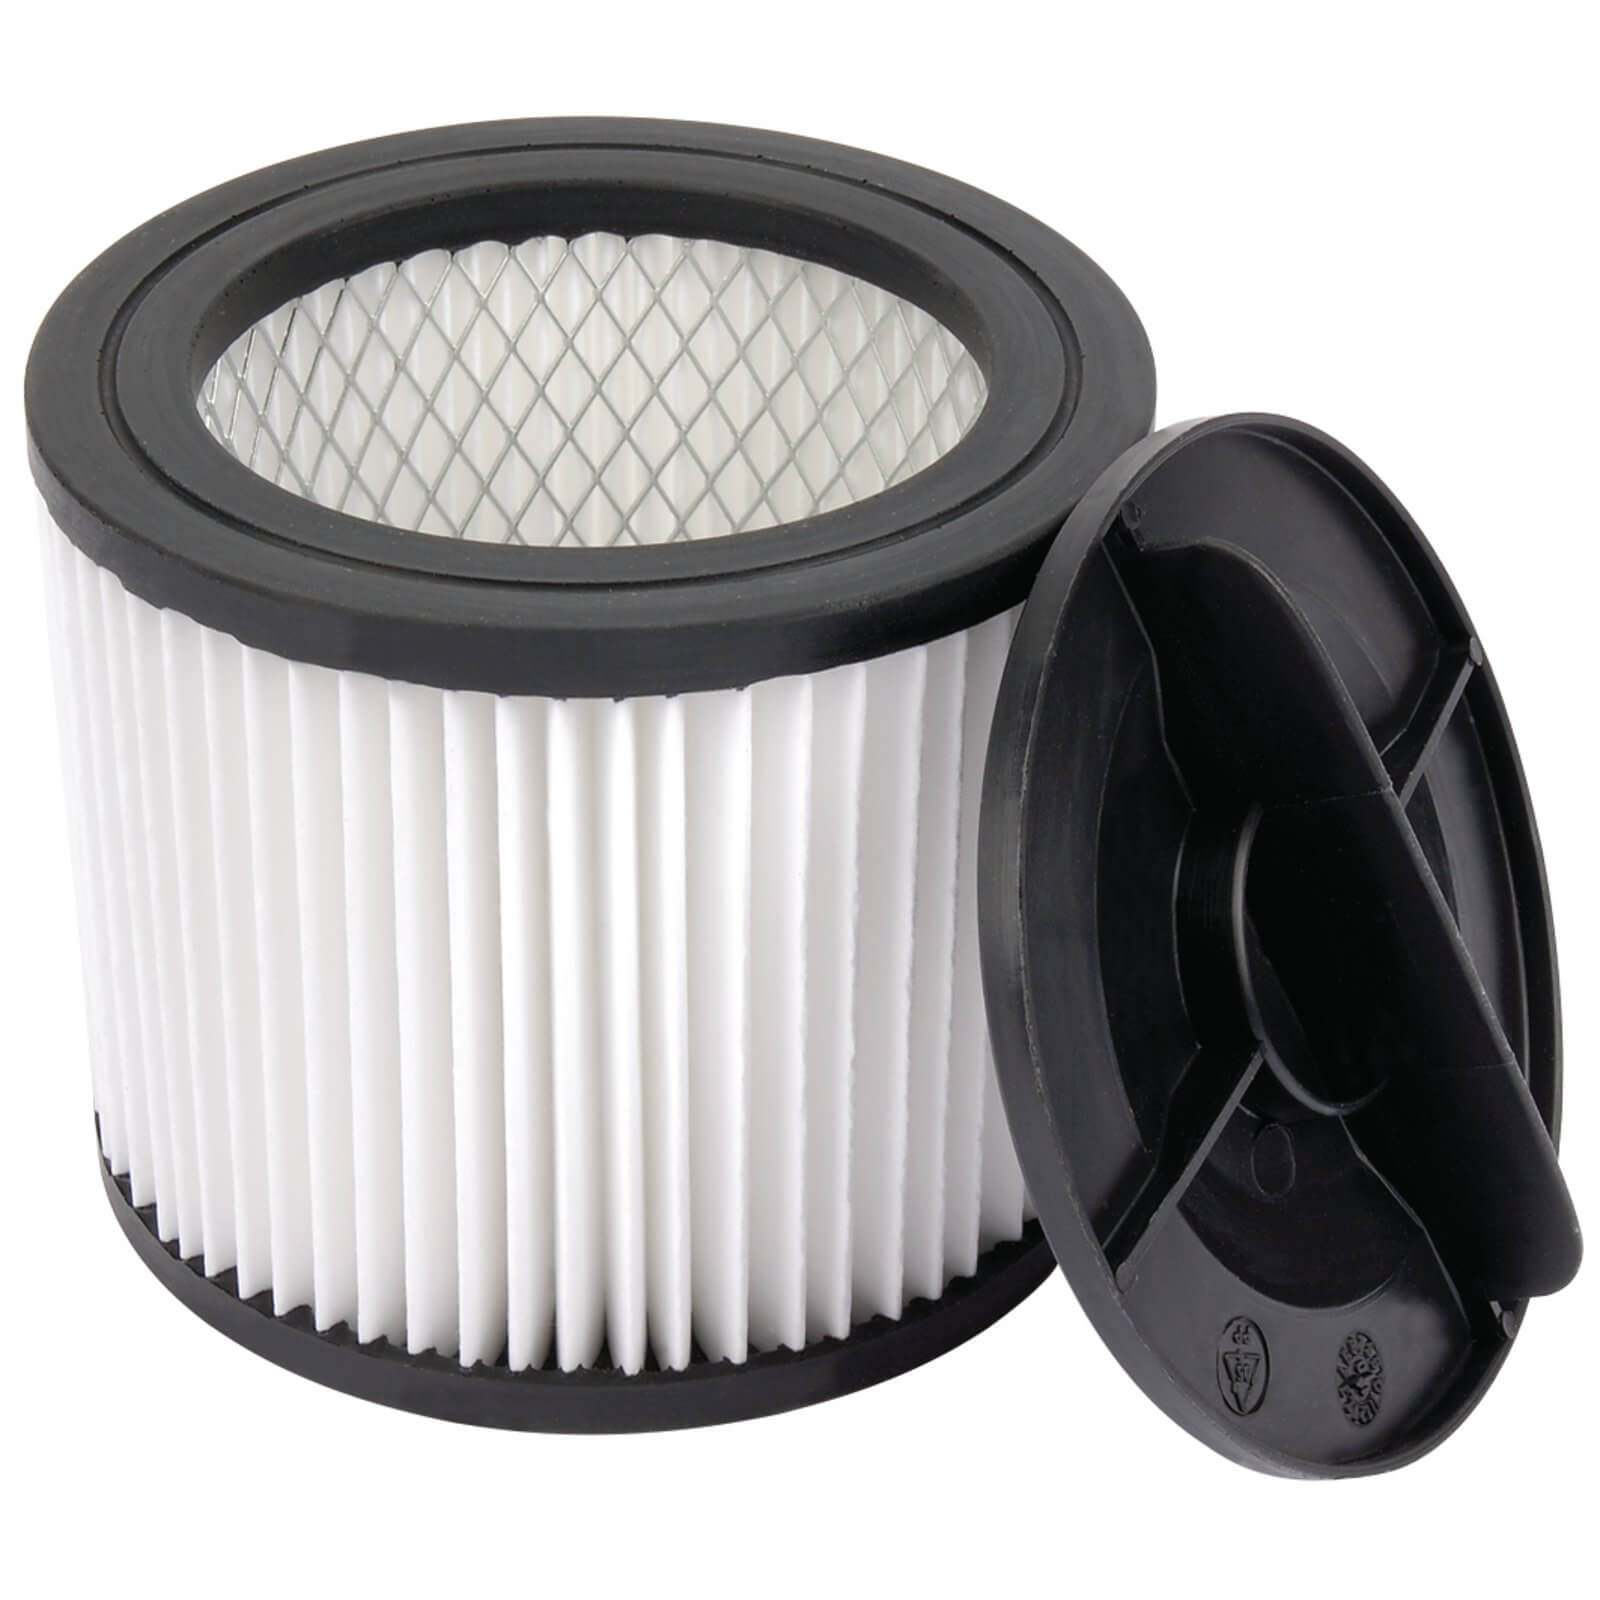 Draper Hepa Filter for WDV21 and WDV30SS Vacuum Cleaners